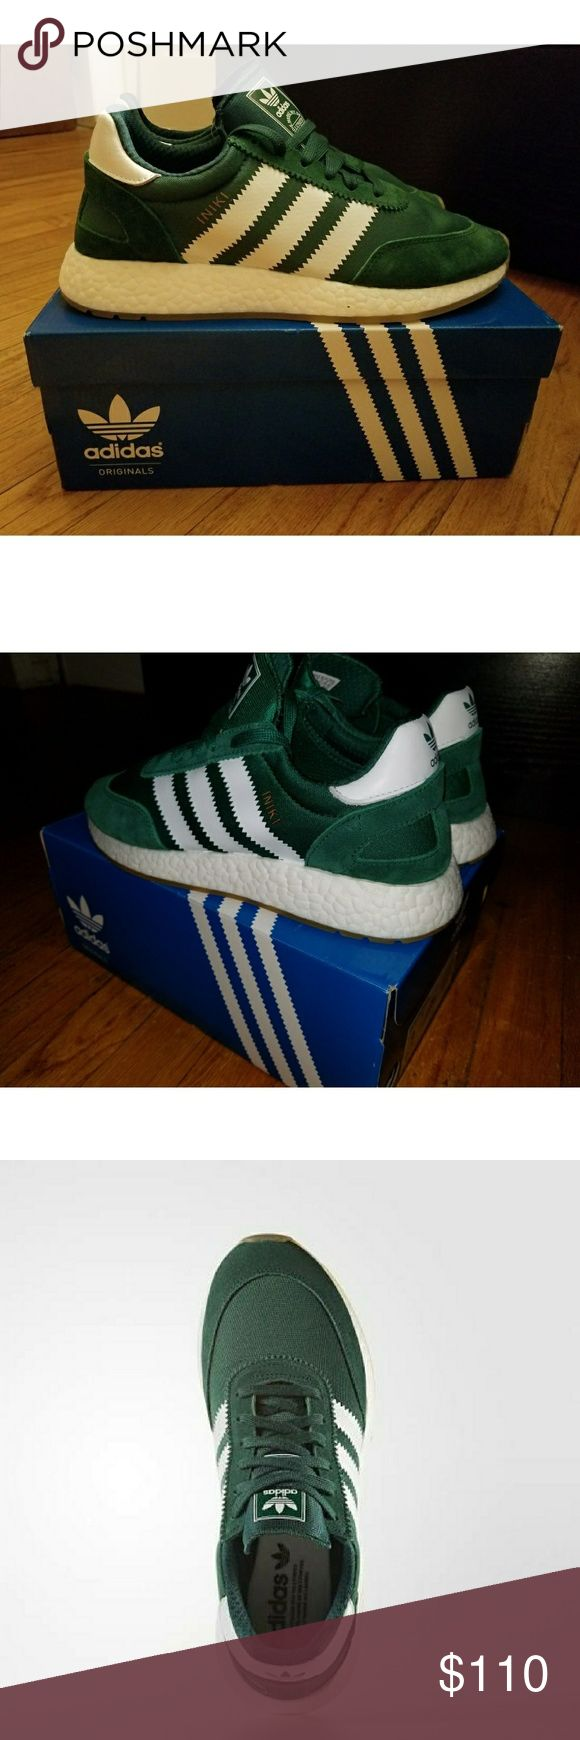 ADIDAS INIKI BOOST in Green/Gum Brand new with tags. Adidas Iniki in green/gum combo. Super lightweight old school adidas with the boost technology. adidas Shoes Sneakers